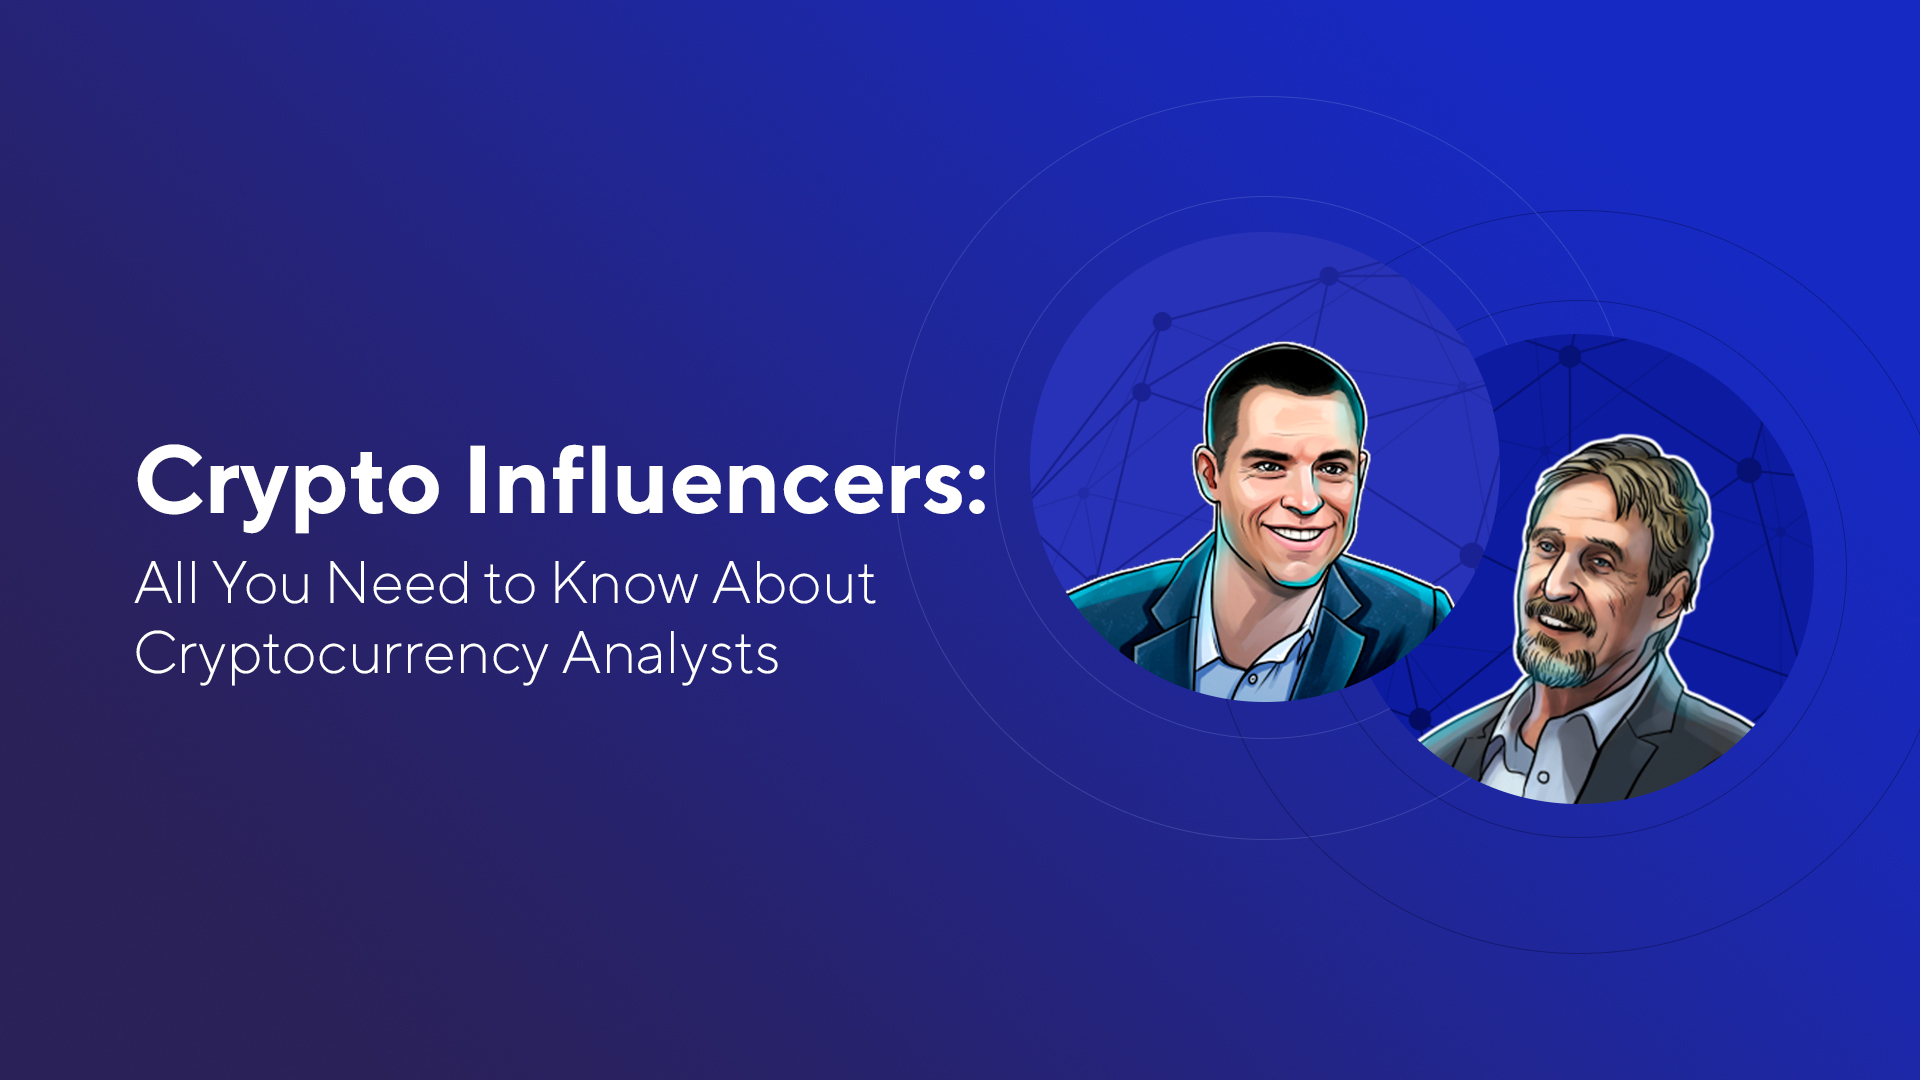 Crypto Influencers: All You Need to Know About Cryptocurrency Analysts